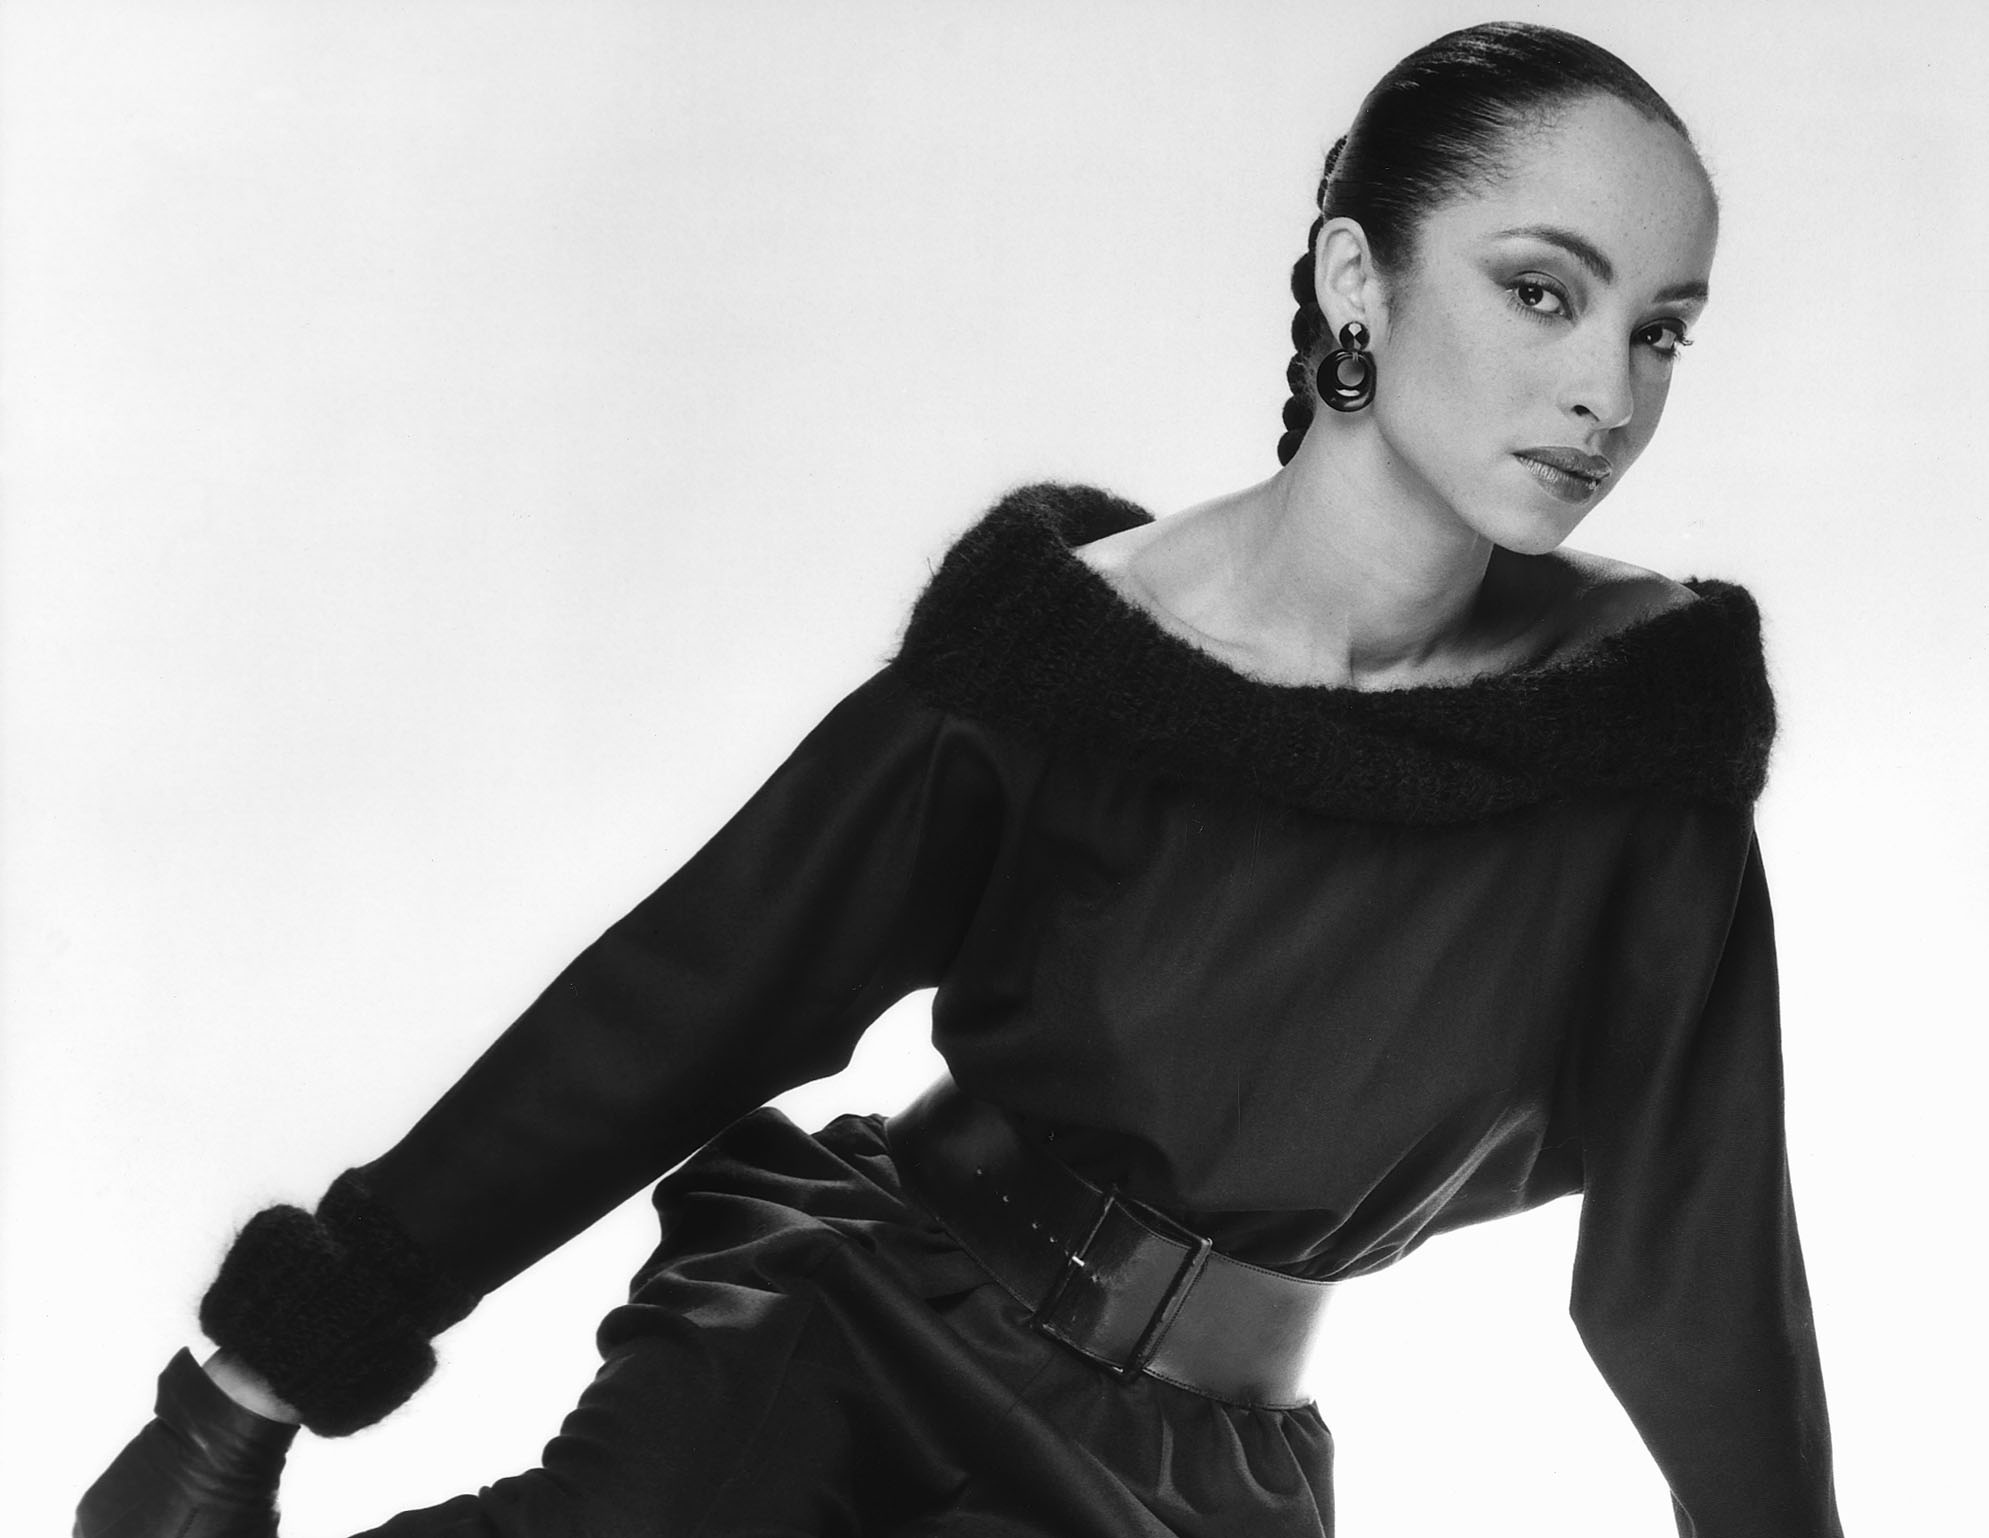 British singer songwriter Sade Adu, lead singer of the